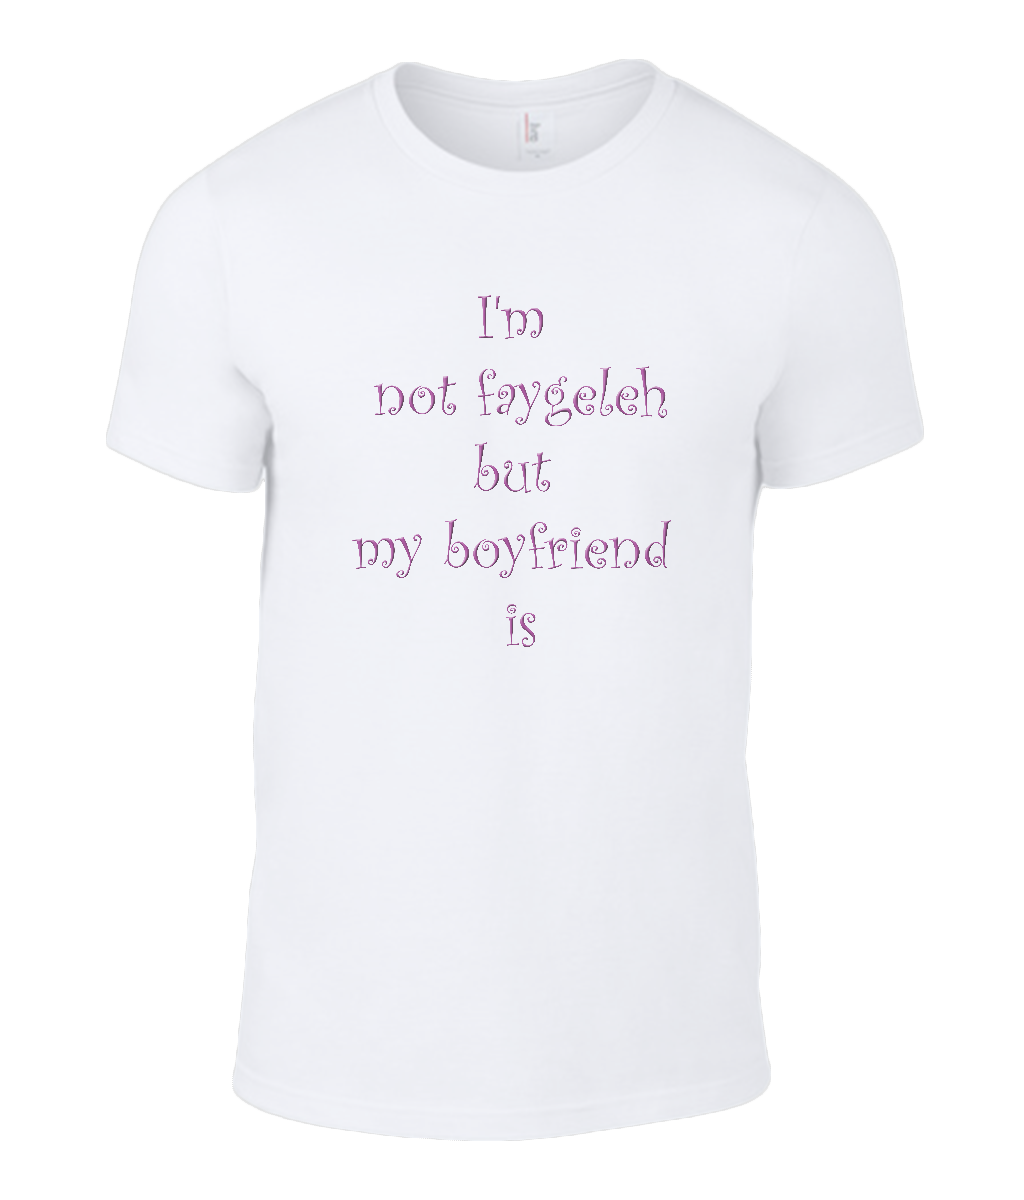 Round Neck T-Shirt - I'm not faygeleigh, my boyfriend is